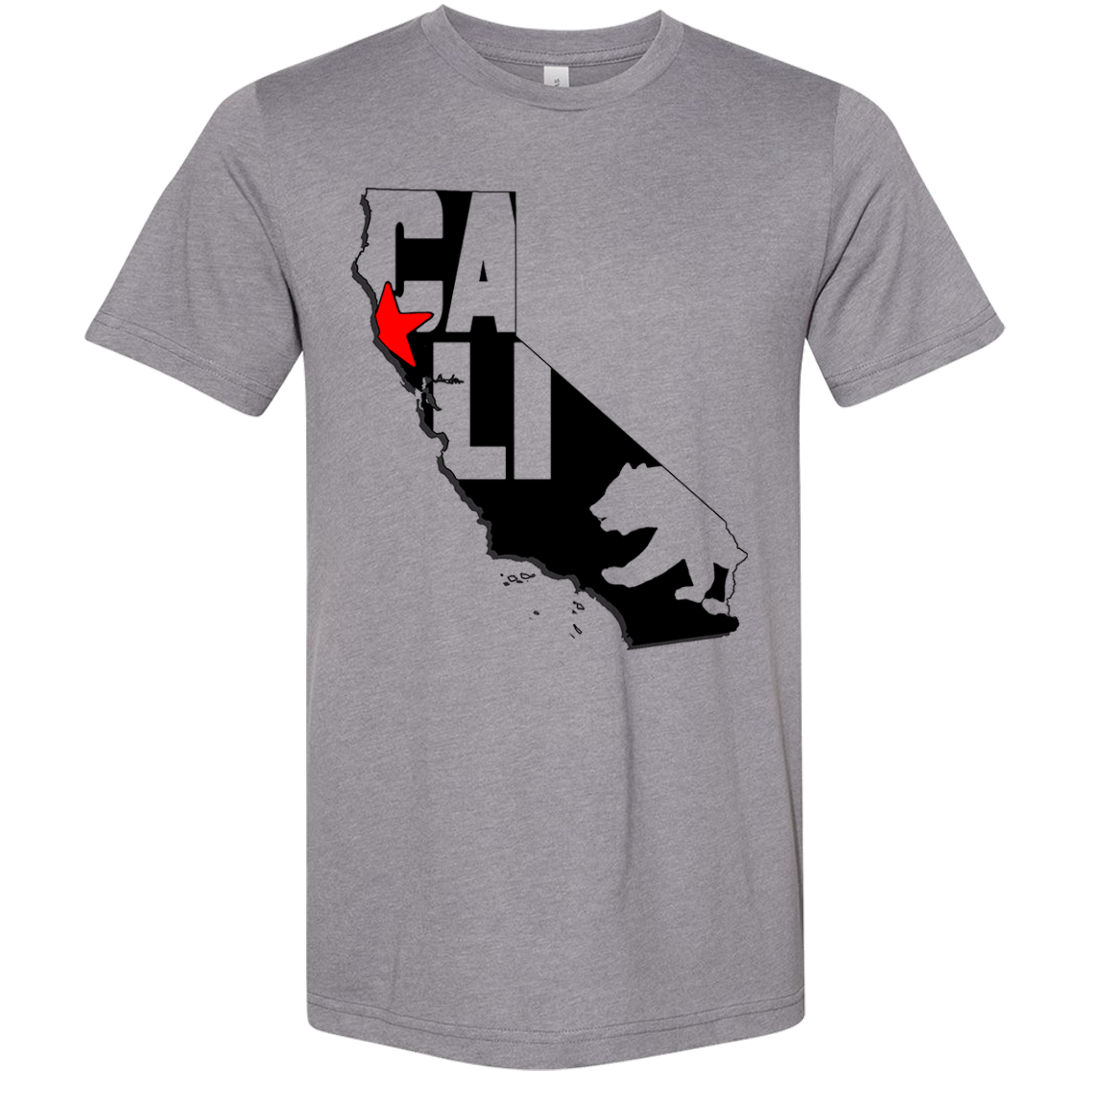 Cali Map Silhouette Outline Asst Colors Sueded Tee